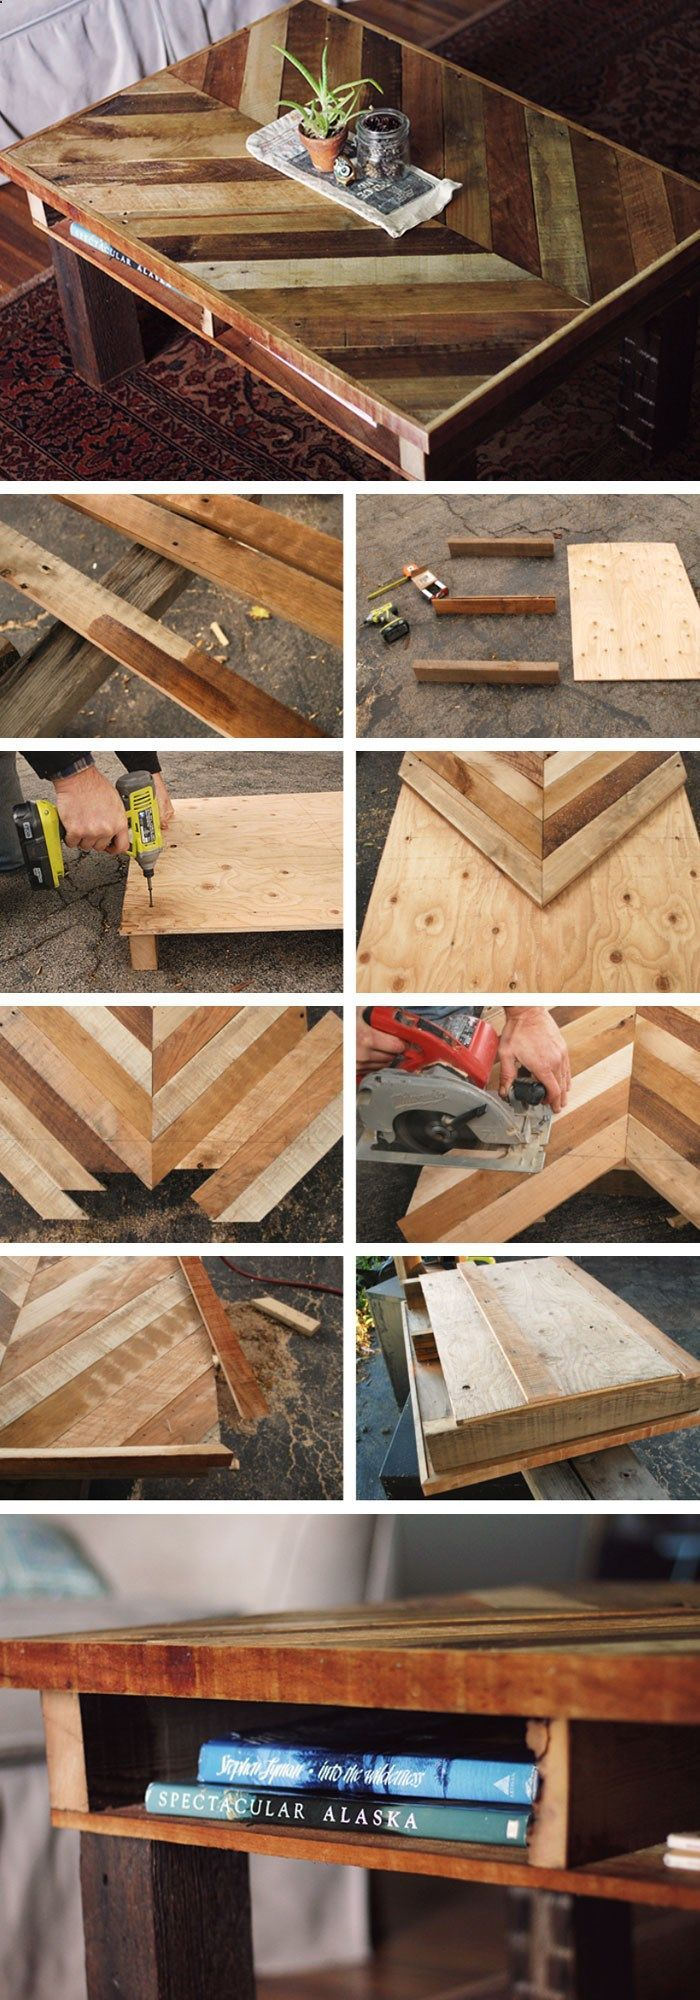 DIY Pallet Coffee Table | DIY Home Decor Ideas on a Budget | DIY Home Decorating on a Budget.....Tables Maybe?